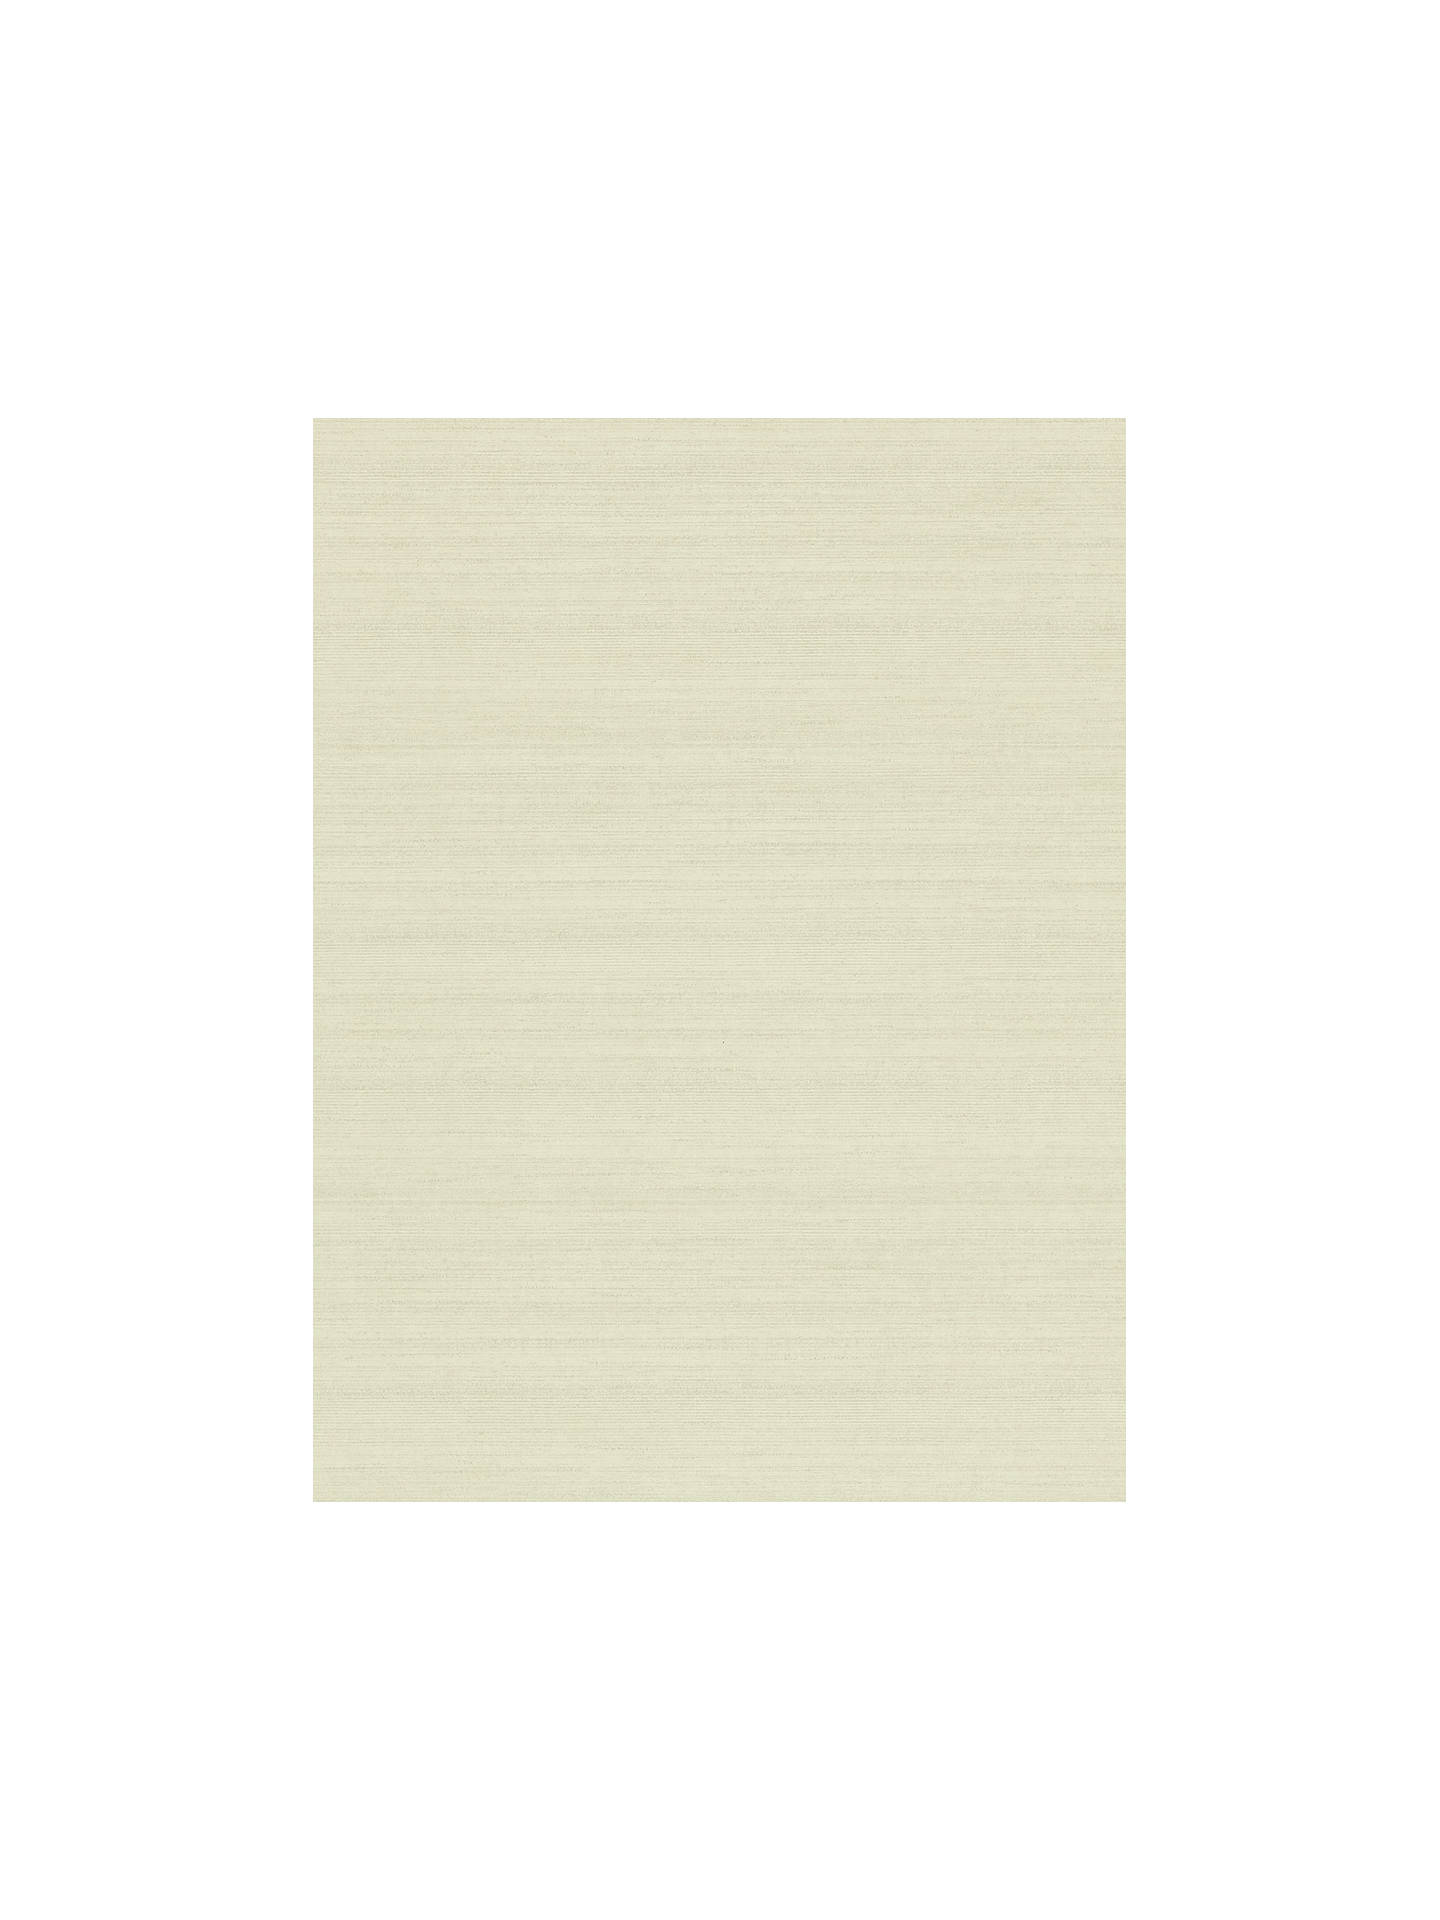 Buy Zoffany Silk Plain Wallpaper, Silver, 310871 Online at johnlewis.com